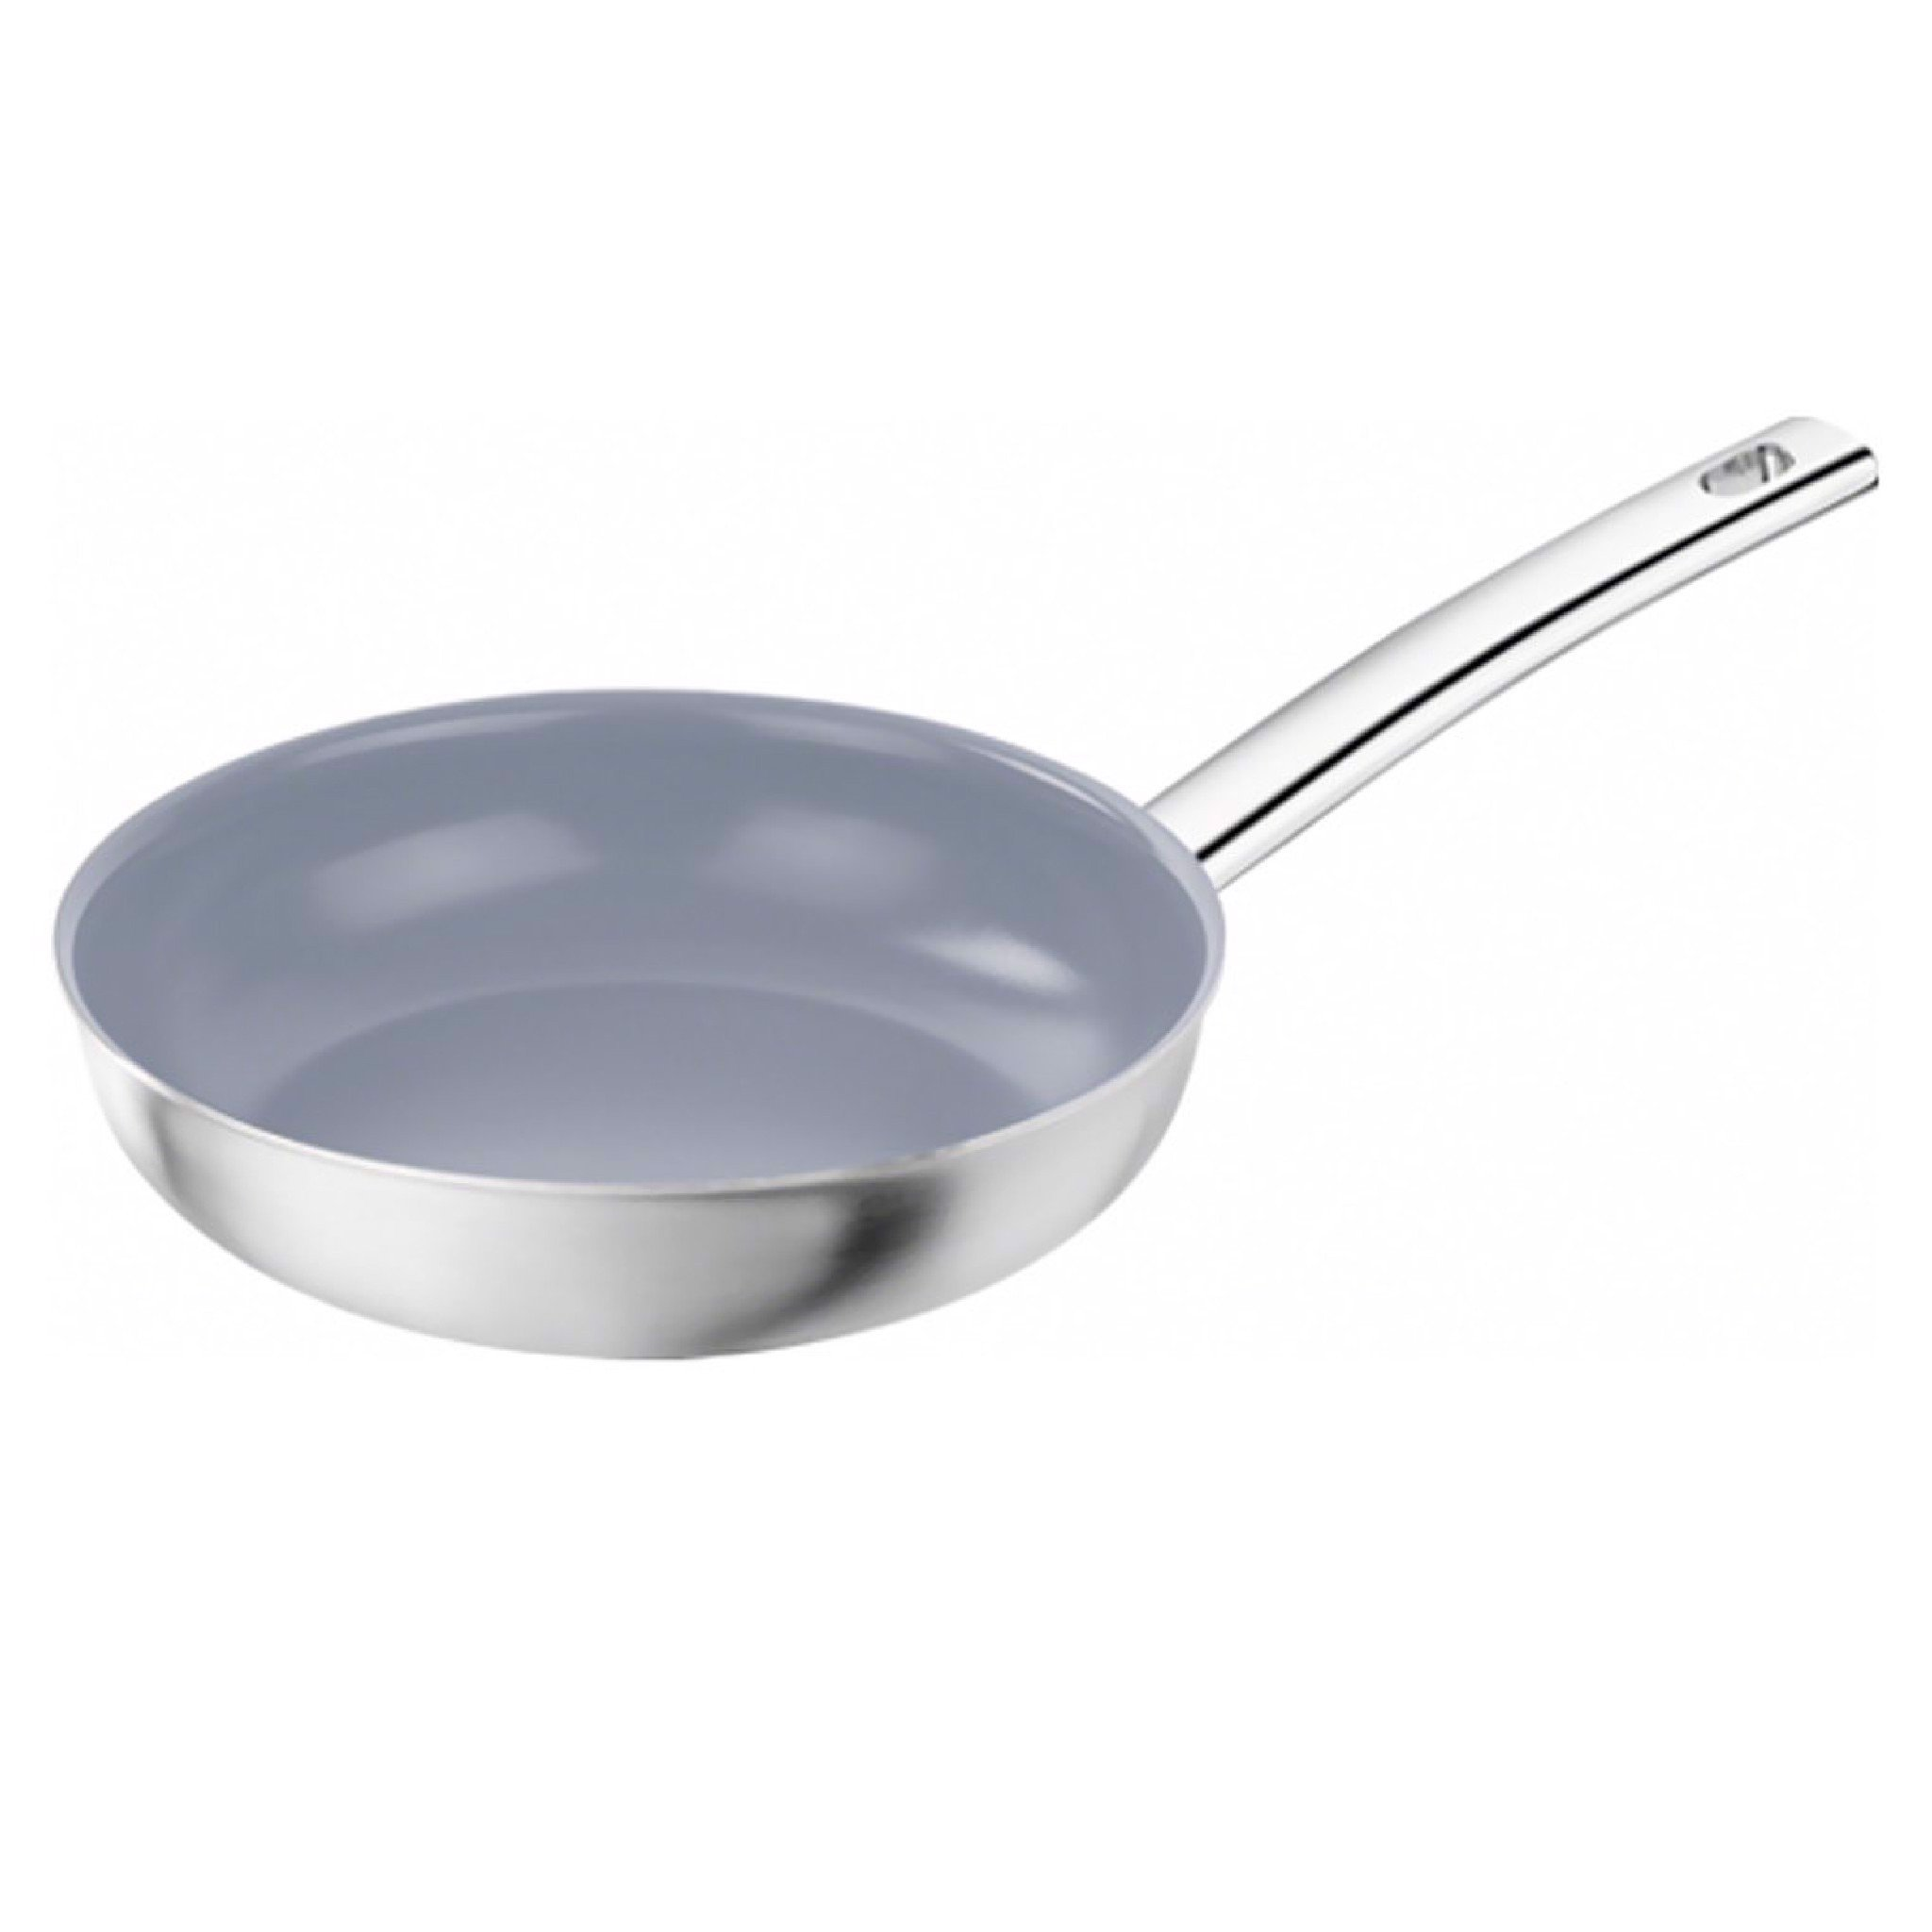 ZWILLING - ZWILLING Prime non stick fry pan